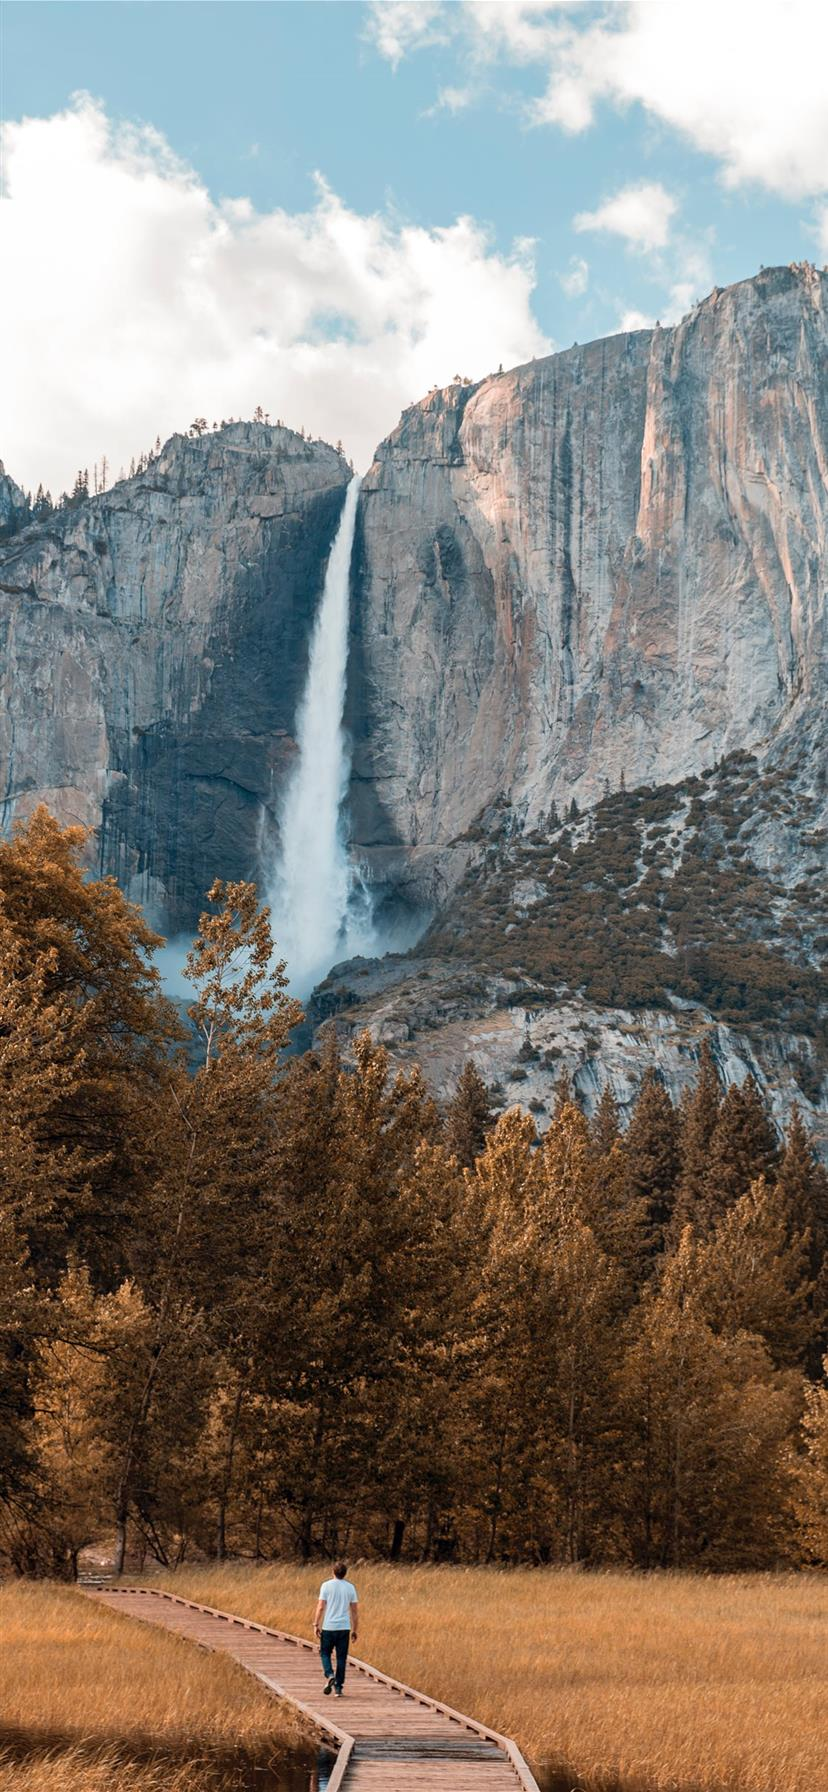 Lost In Yosemite Ca Iphone 11 Wallpapers Free Download